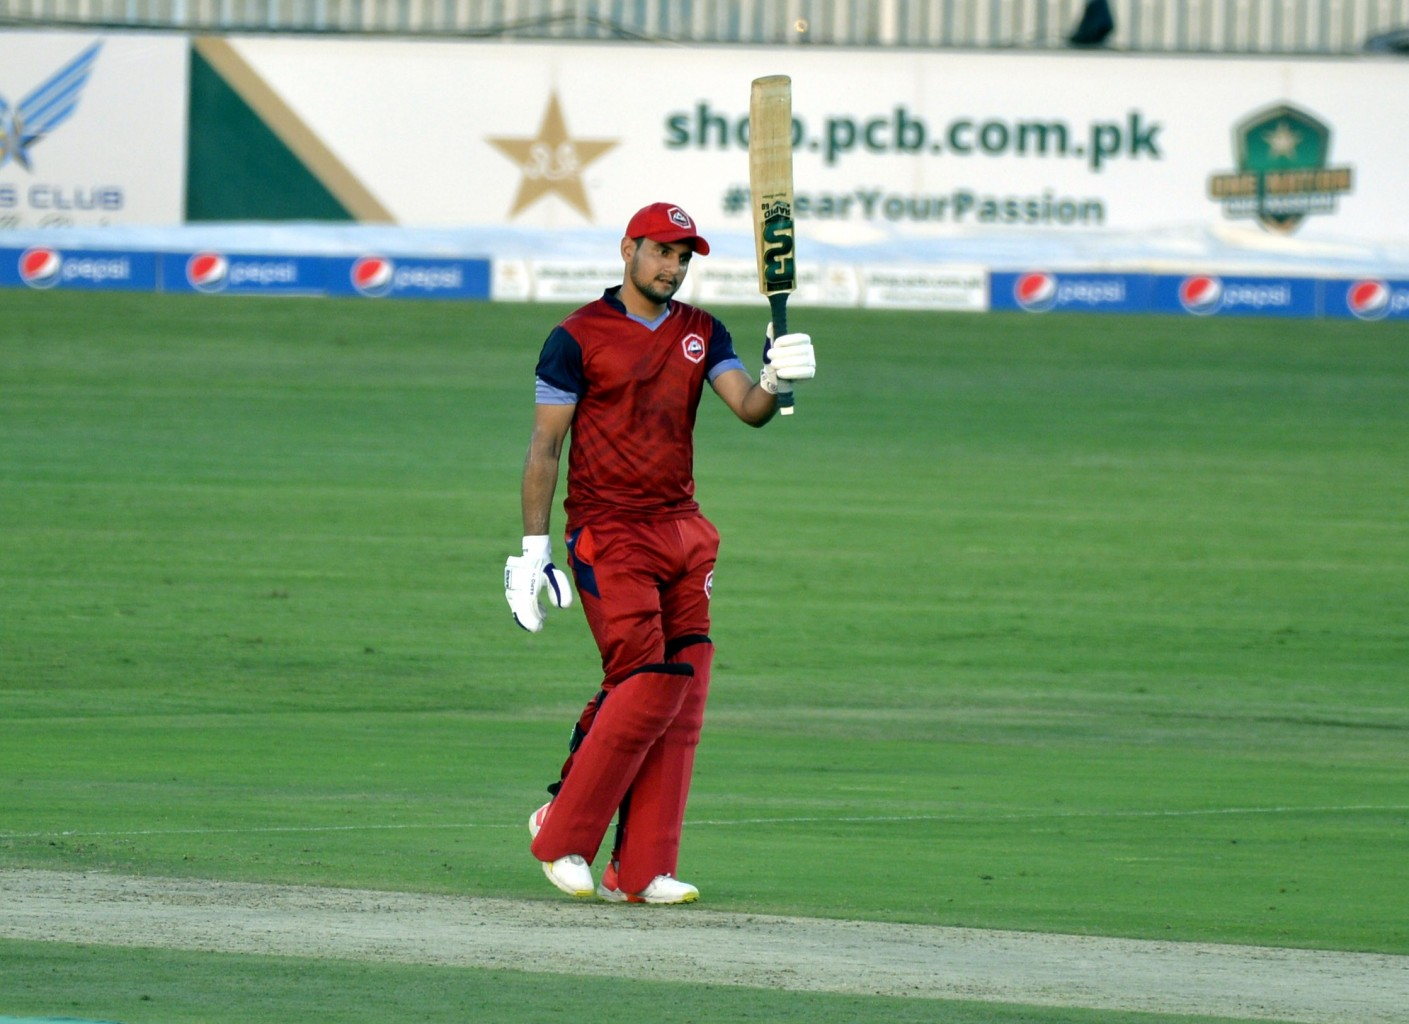 Northern defeat Balochistan by 6 wickets in Match 1 of the National T20 Cup